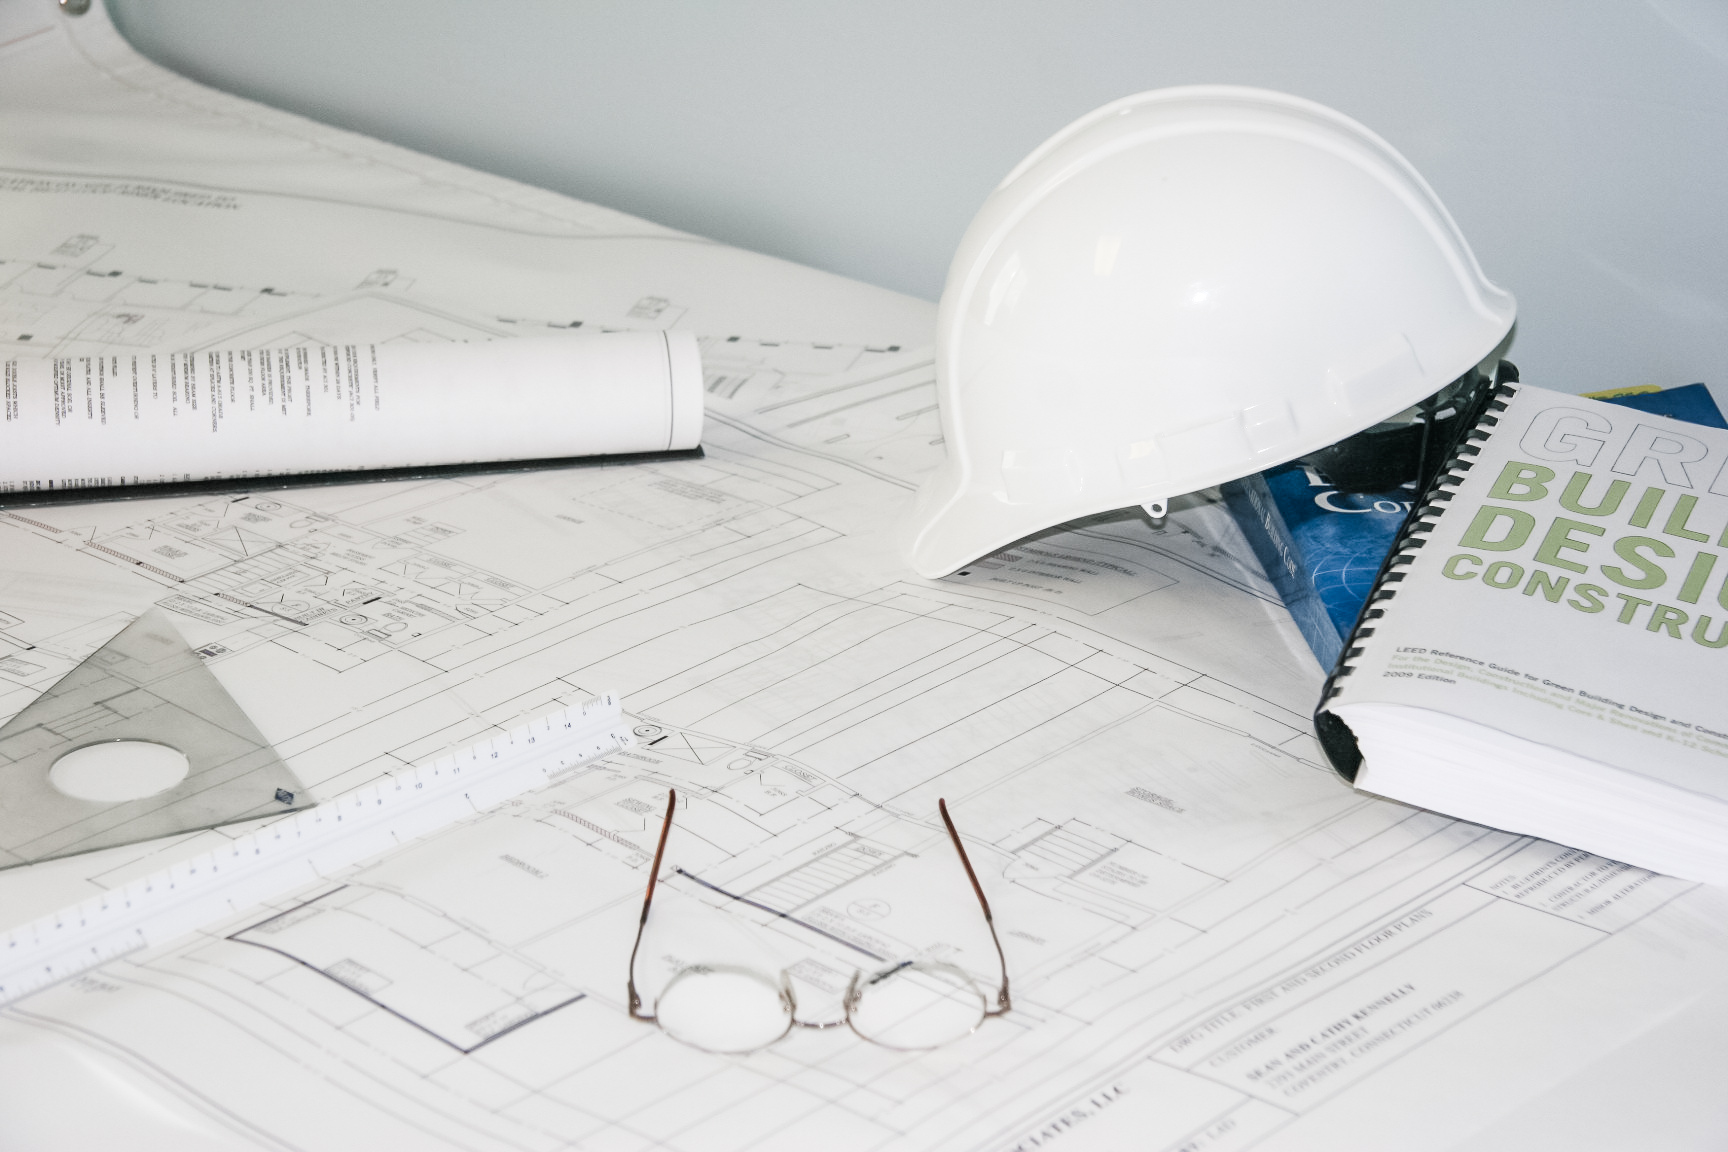 Consulting engineering plans beneaht a hard hat and other tools of the trade